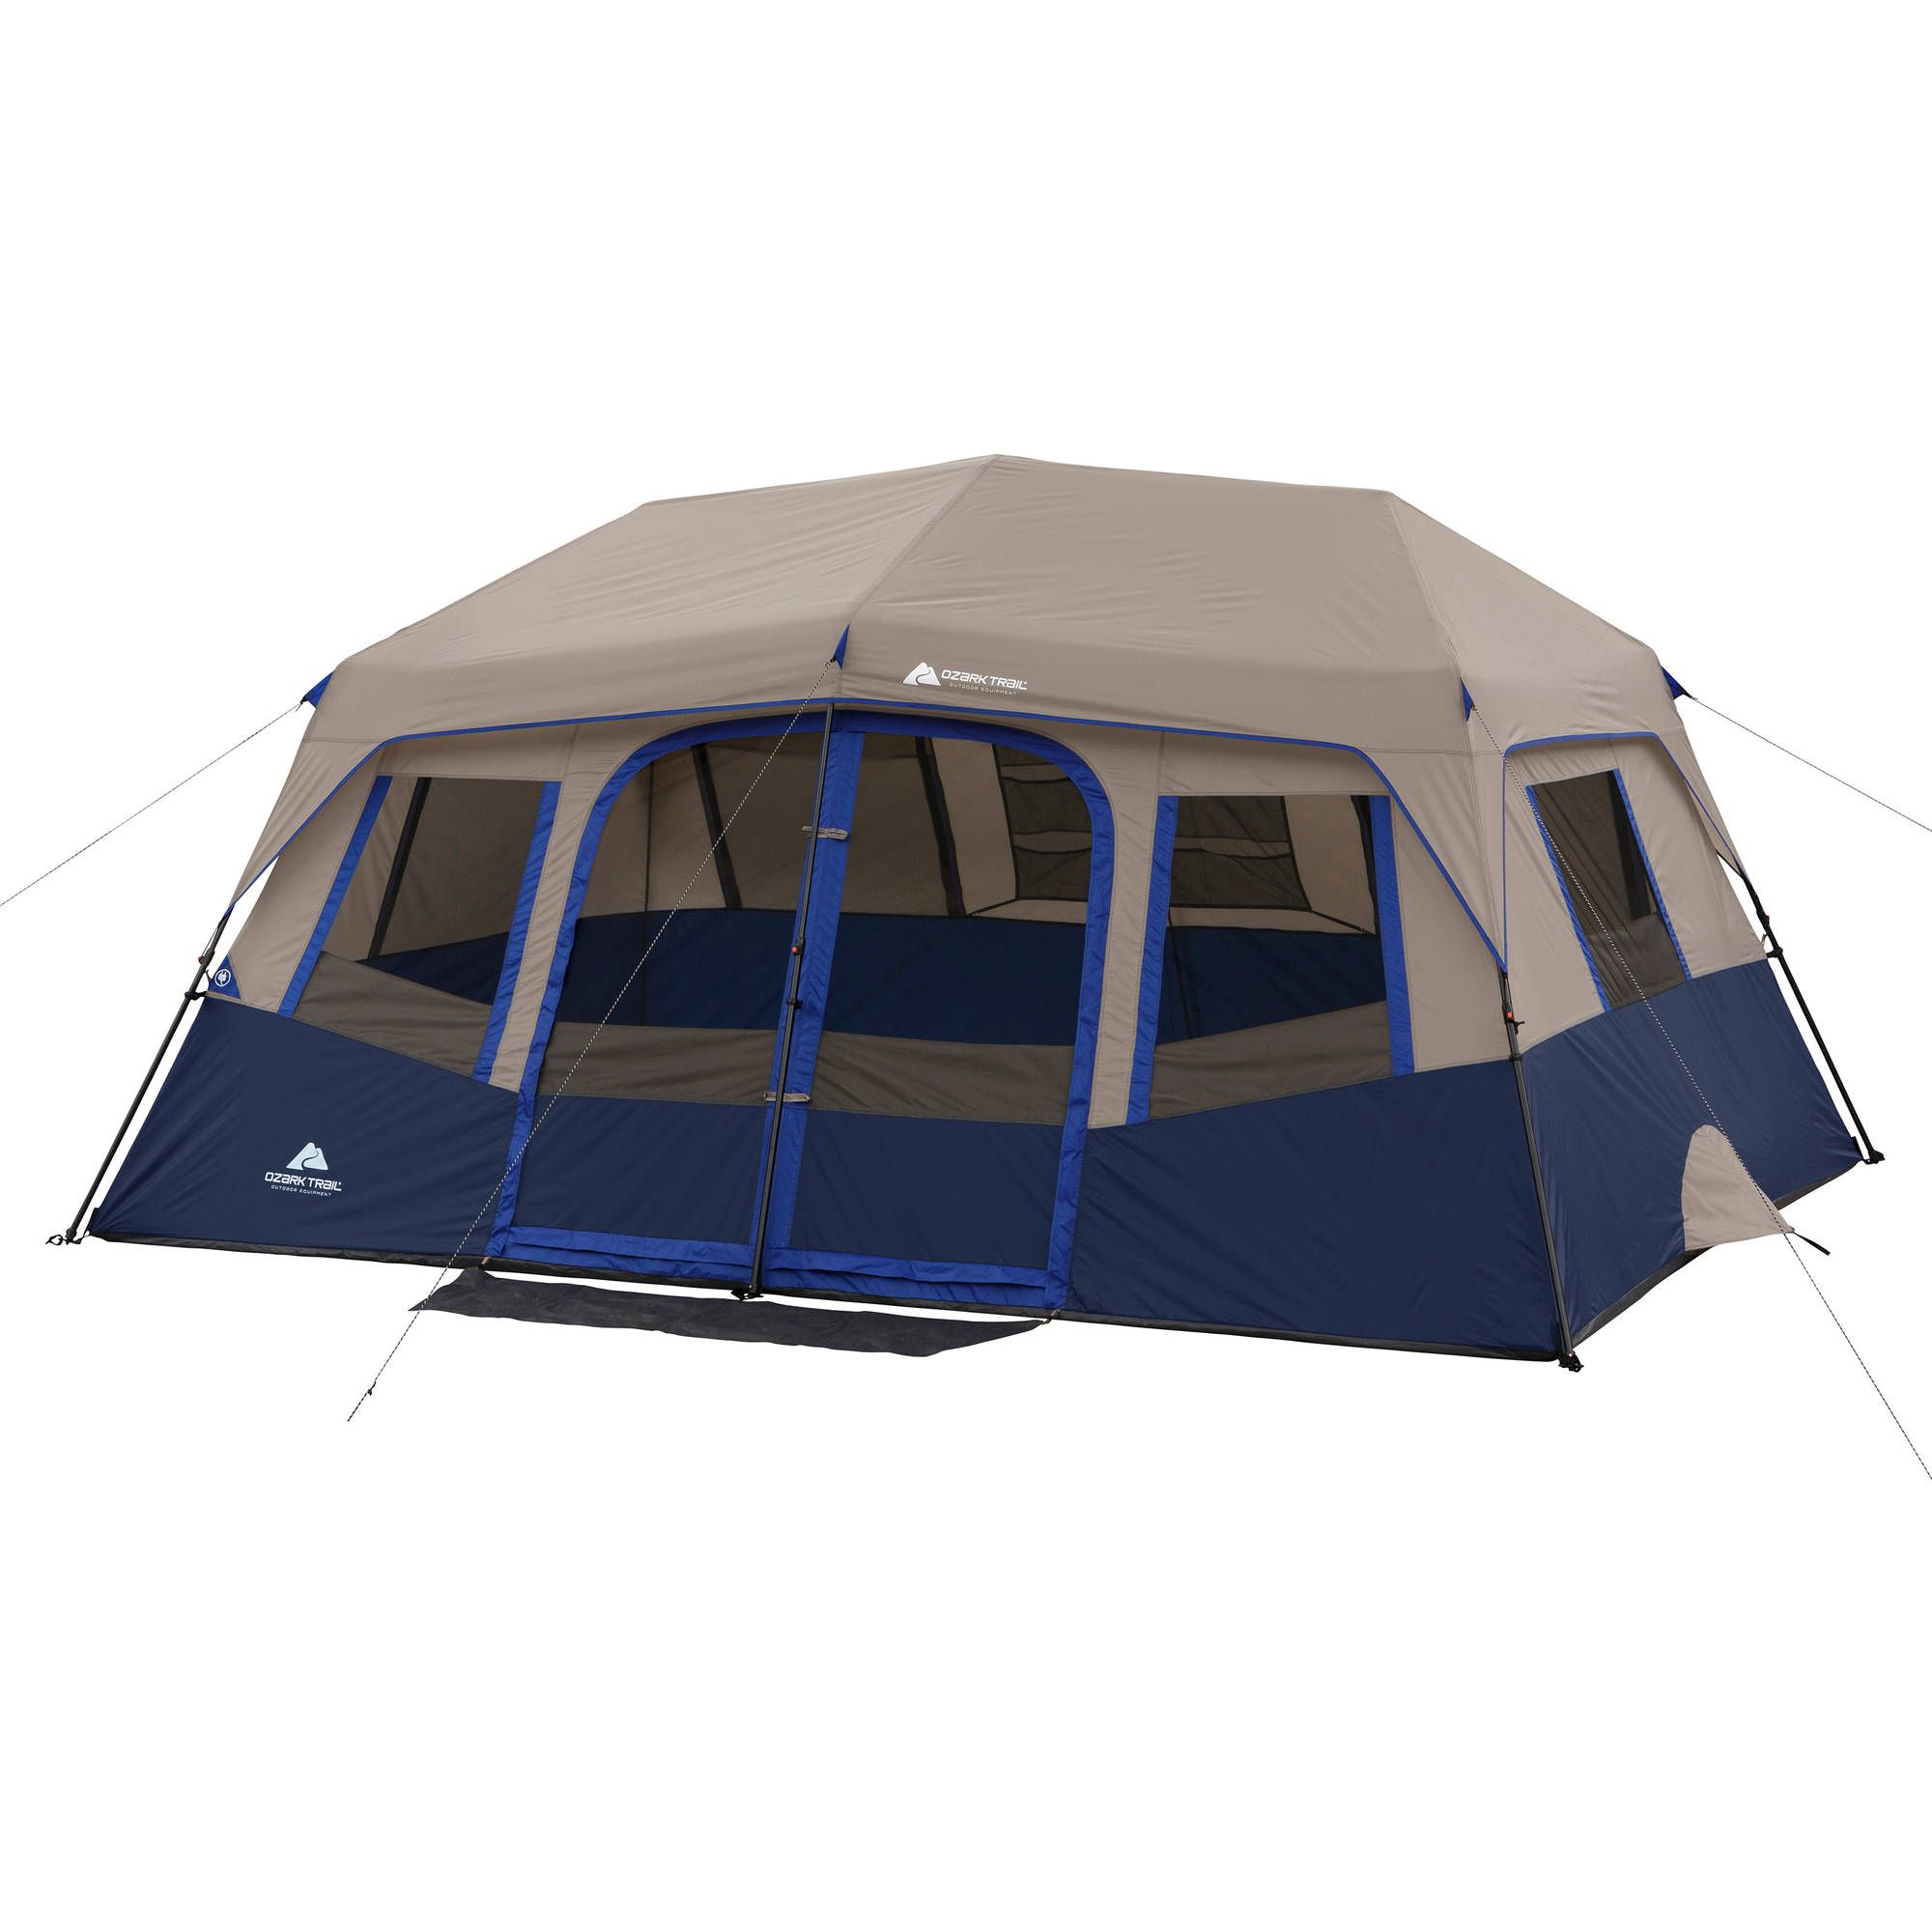 Tangkula 10person Waterproof Family Double Layer Camping Tent Wbag For More Information Visit Image Link Kids Camping Gear Tent Family Tent Camping